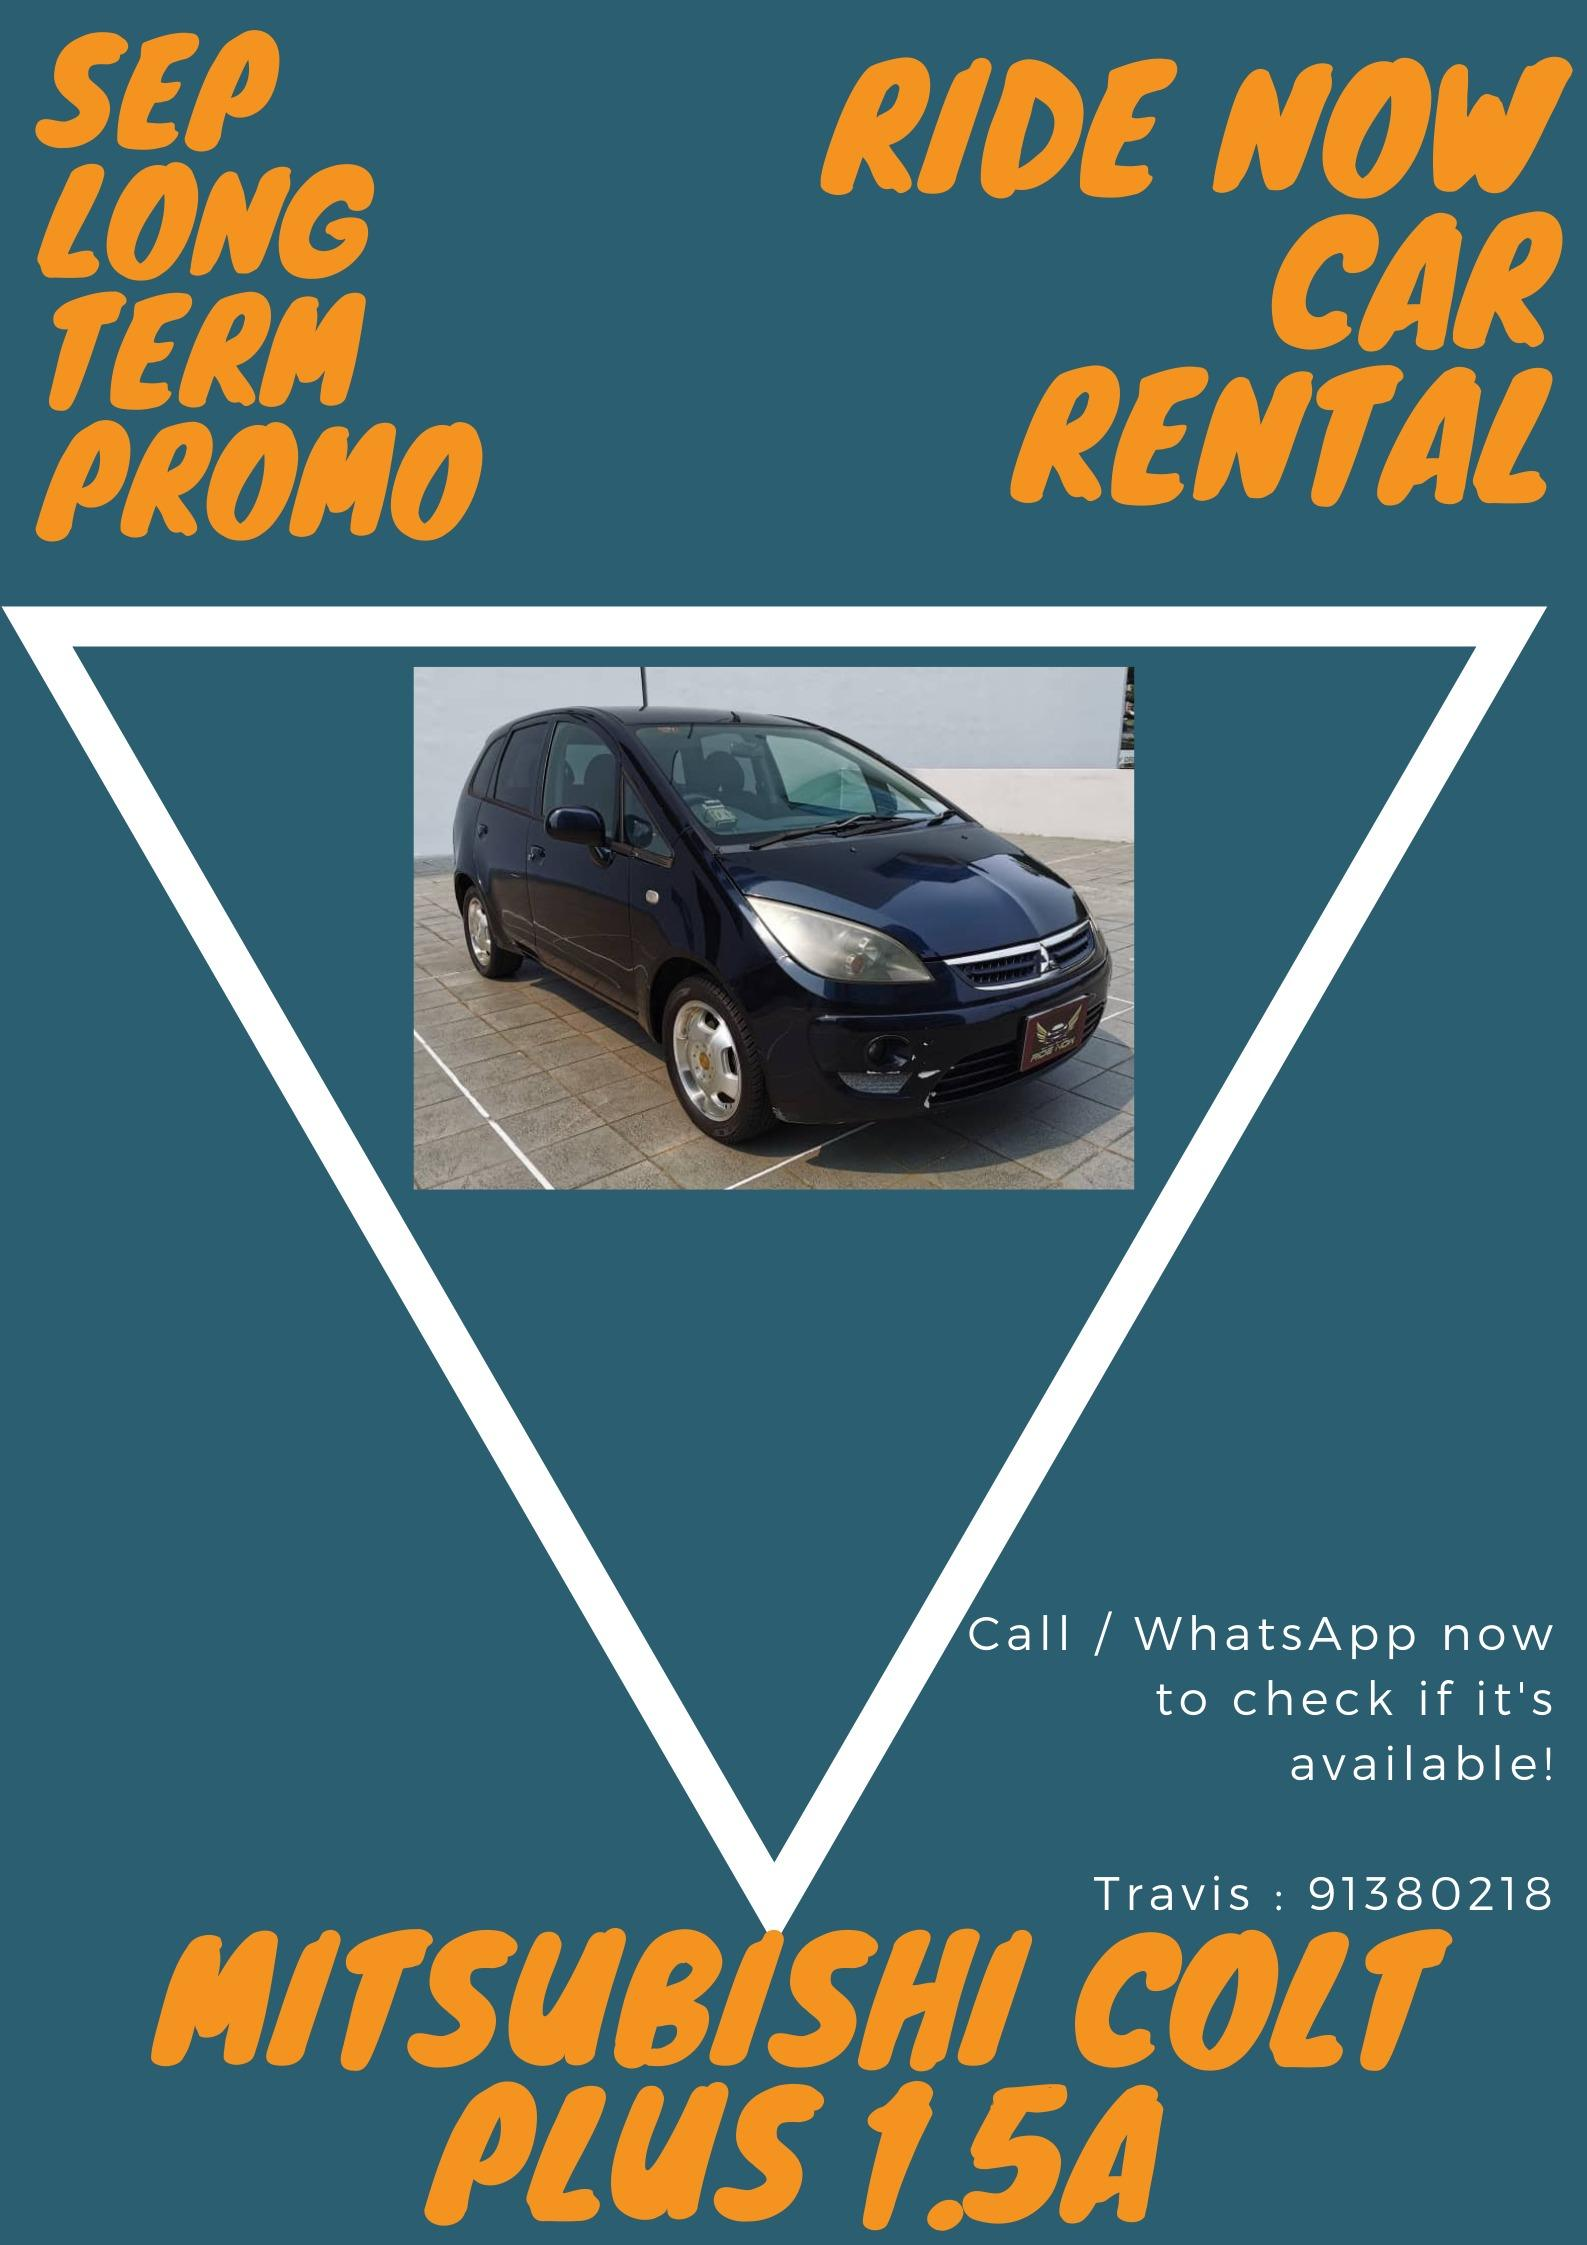 Mitsubishi Colt Plus 1.5A - Hatchback perfect for new Drivers! Compact Hatchback! Easy to operate and park! Perfect for beginners to drive to gain confidence! P plate welcomed!